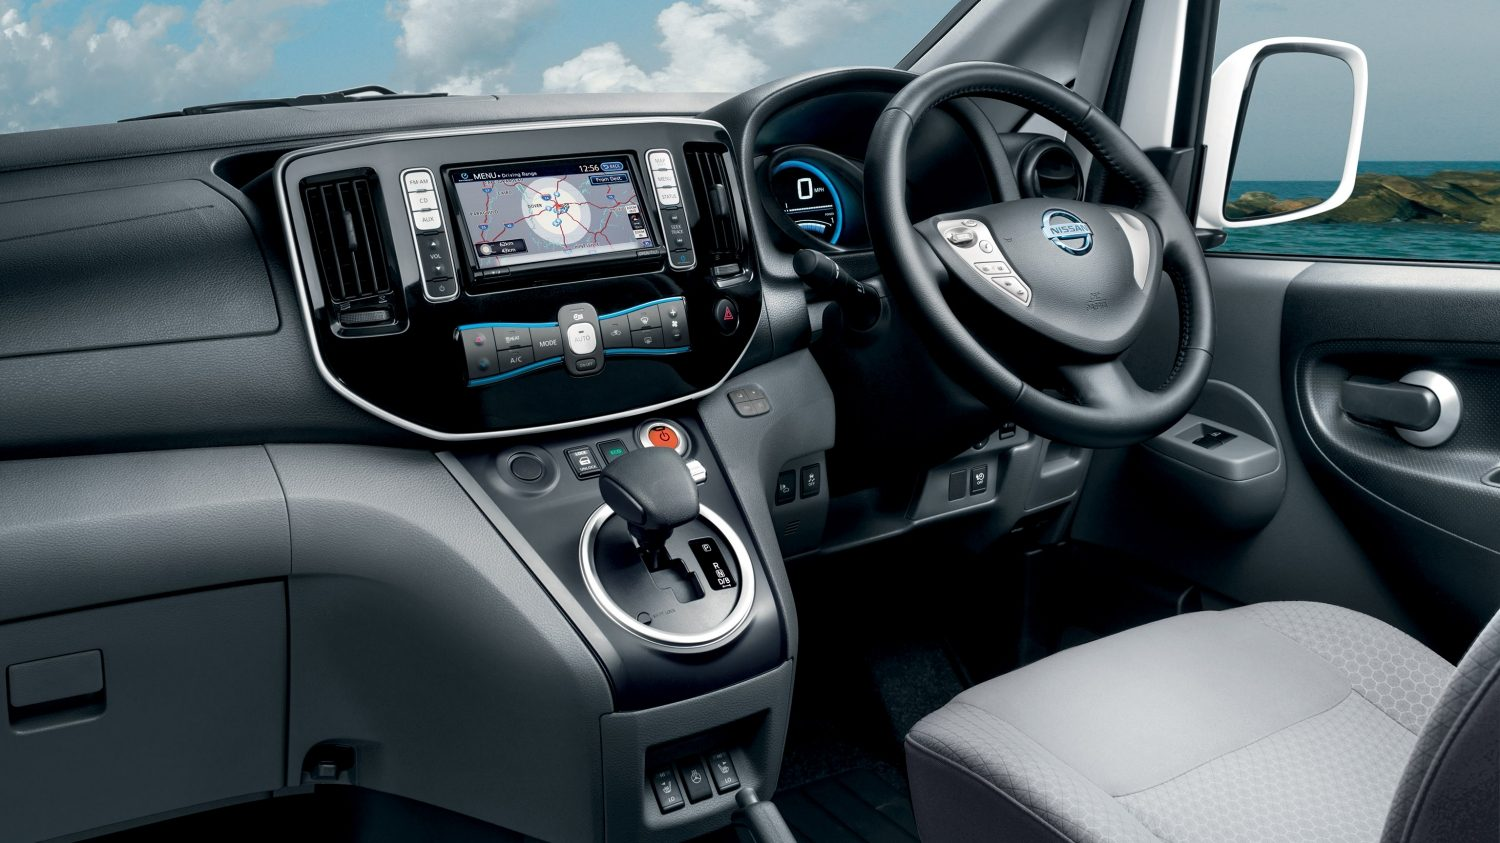 Van | Nissan e-NV200 | Electric van interior